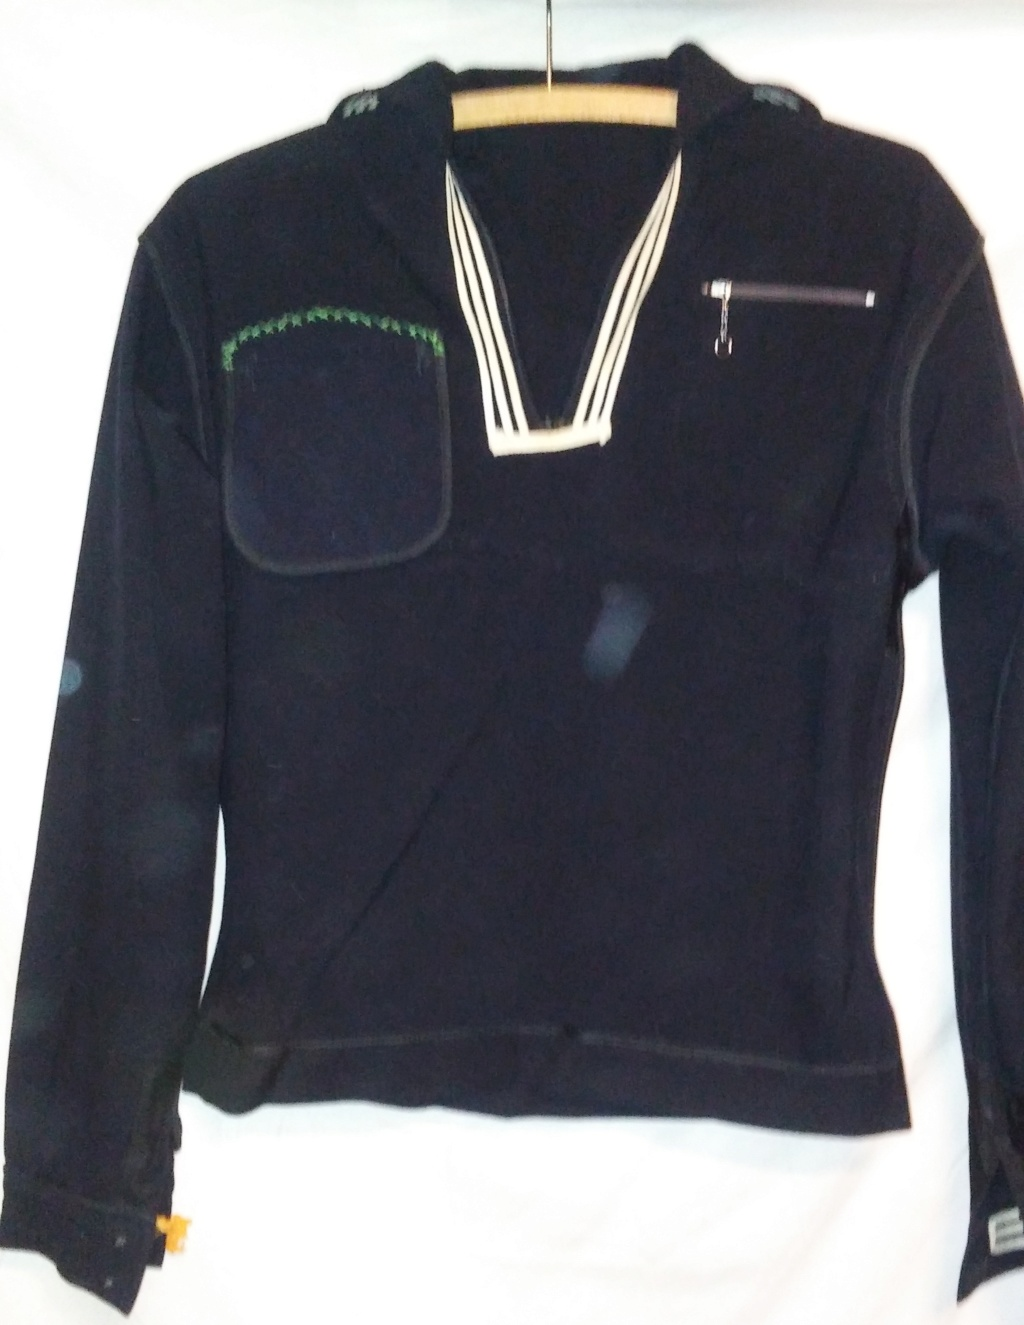 My Navy Jumper Collection 19700329